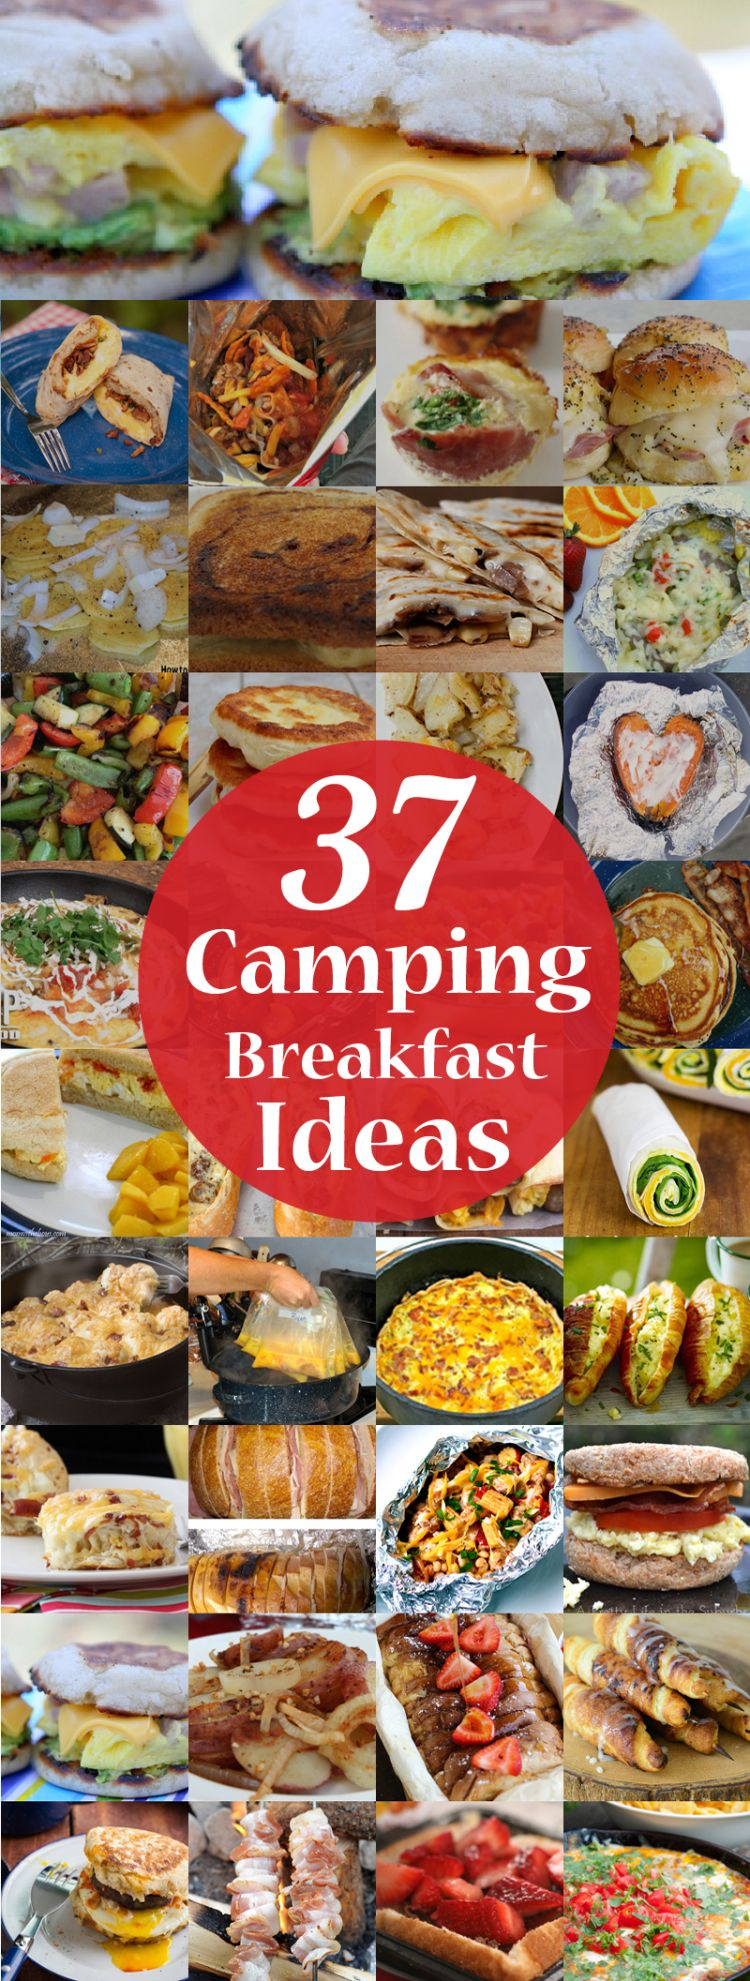 37 Ideas To Use All 4 Bahtroom Border Tile Types: 37 Camping Breakfast Ideas From Around The Web